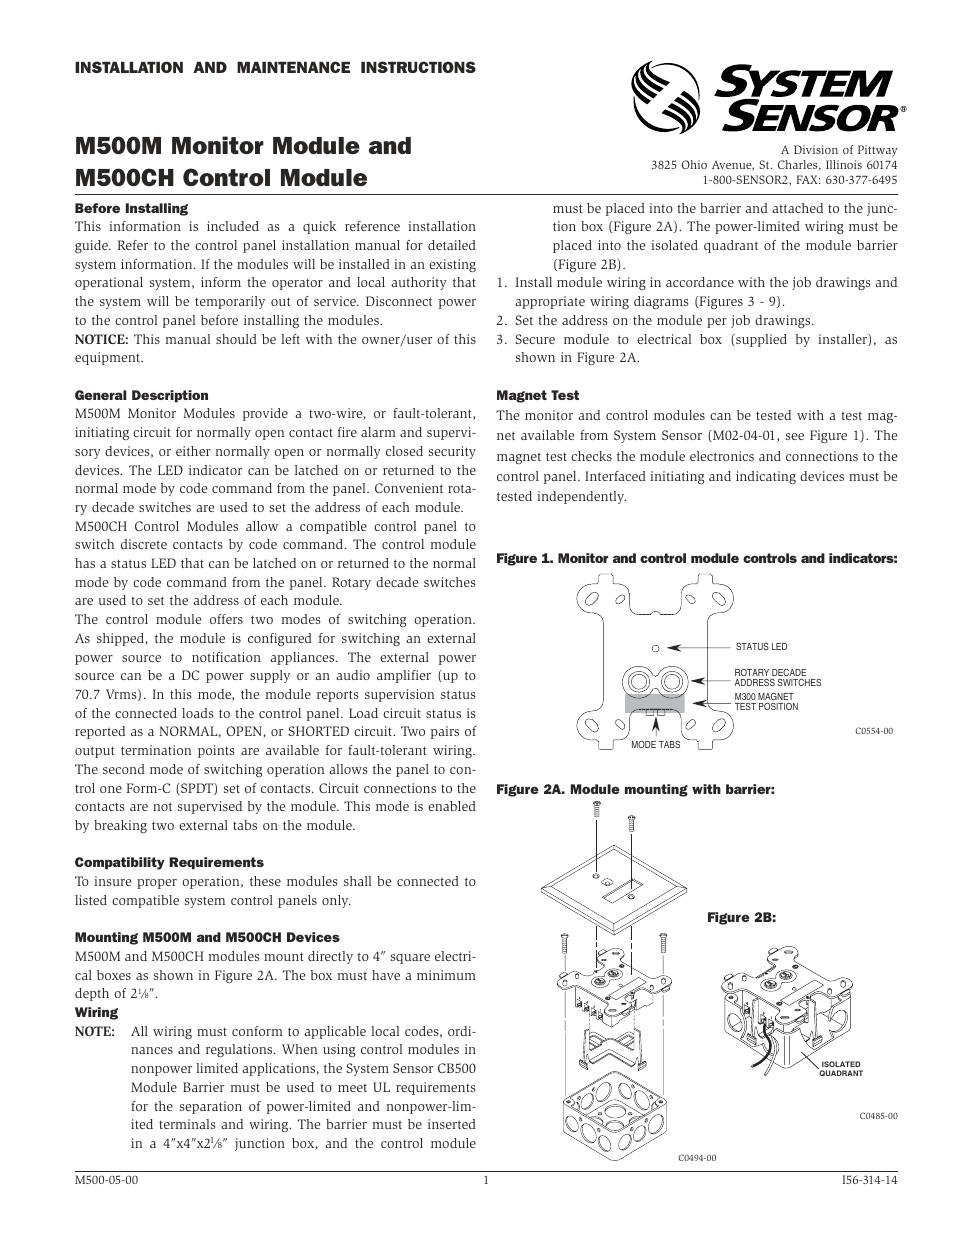 system sensor m500ch page1 system sensor m500ch user manual 4 pages 5R55E Transmission Wiring Diagram at bayanpartner.co